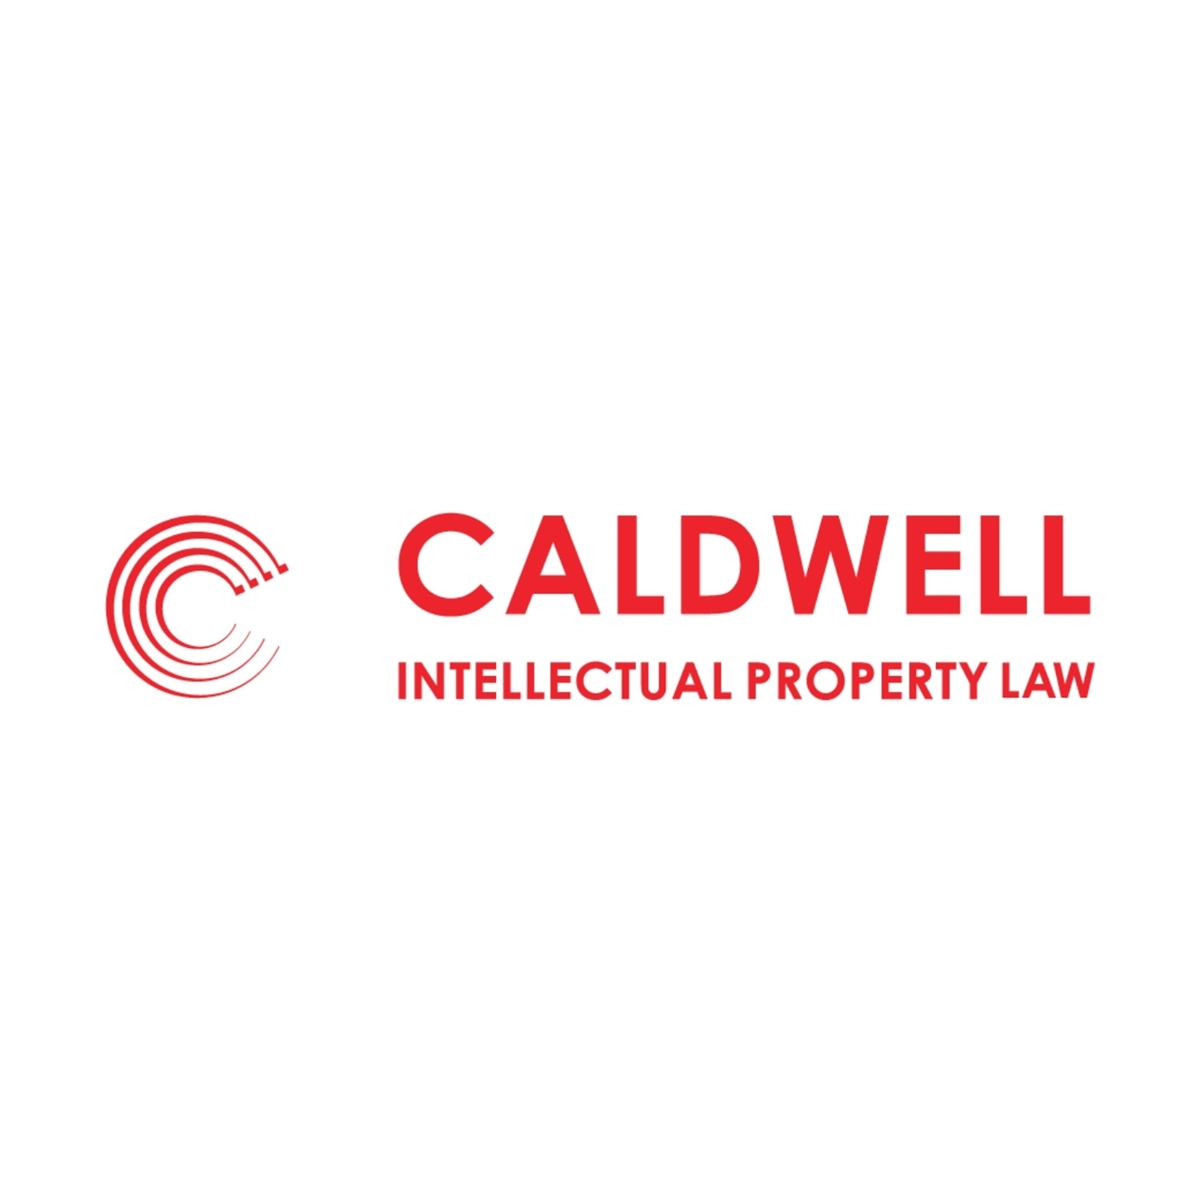 National Security Commission on Artificial Intelligence Final Report: A Bag Full of Hammers? | JD Supra